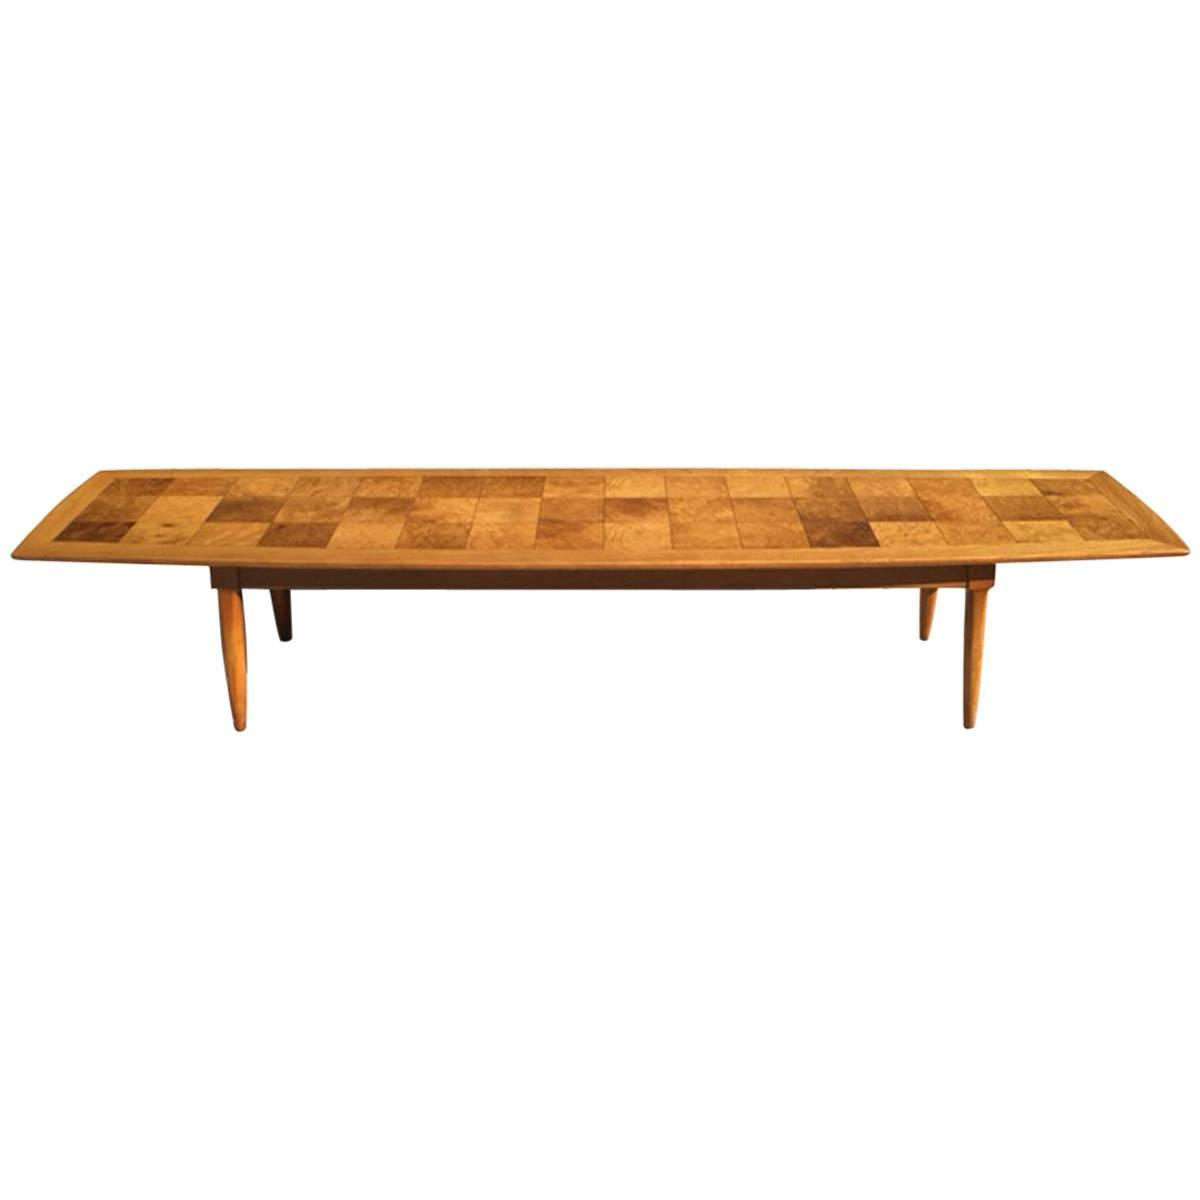 Surfboard Tables For Sale Tomlison Surfboard Coffee Table For Sale At 1stdibs